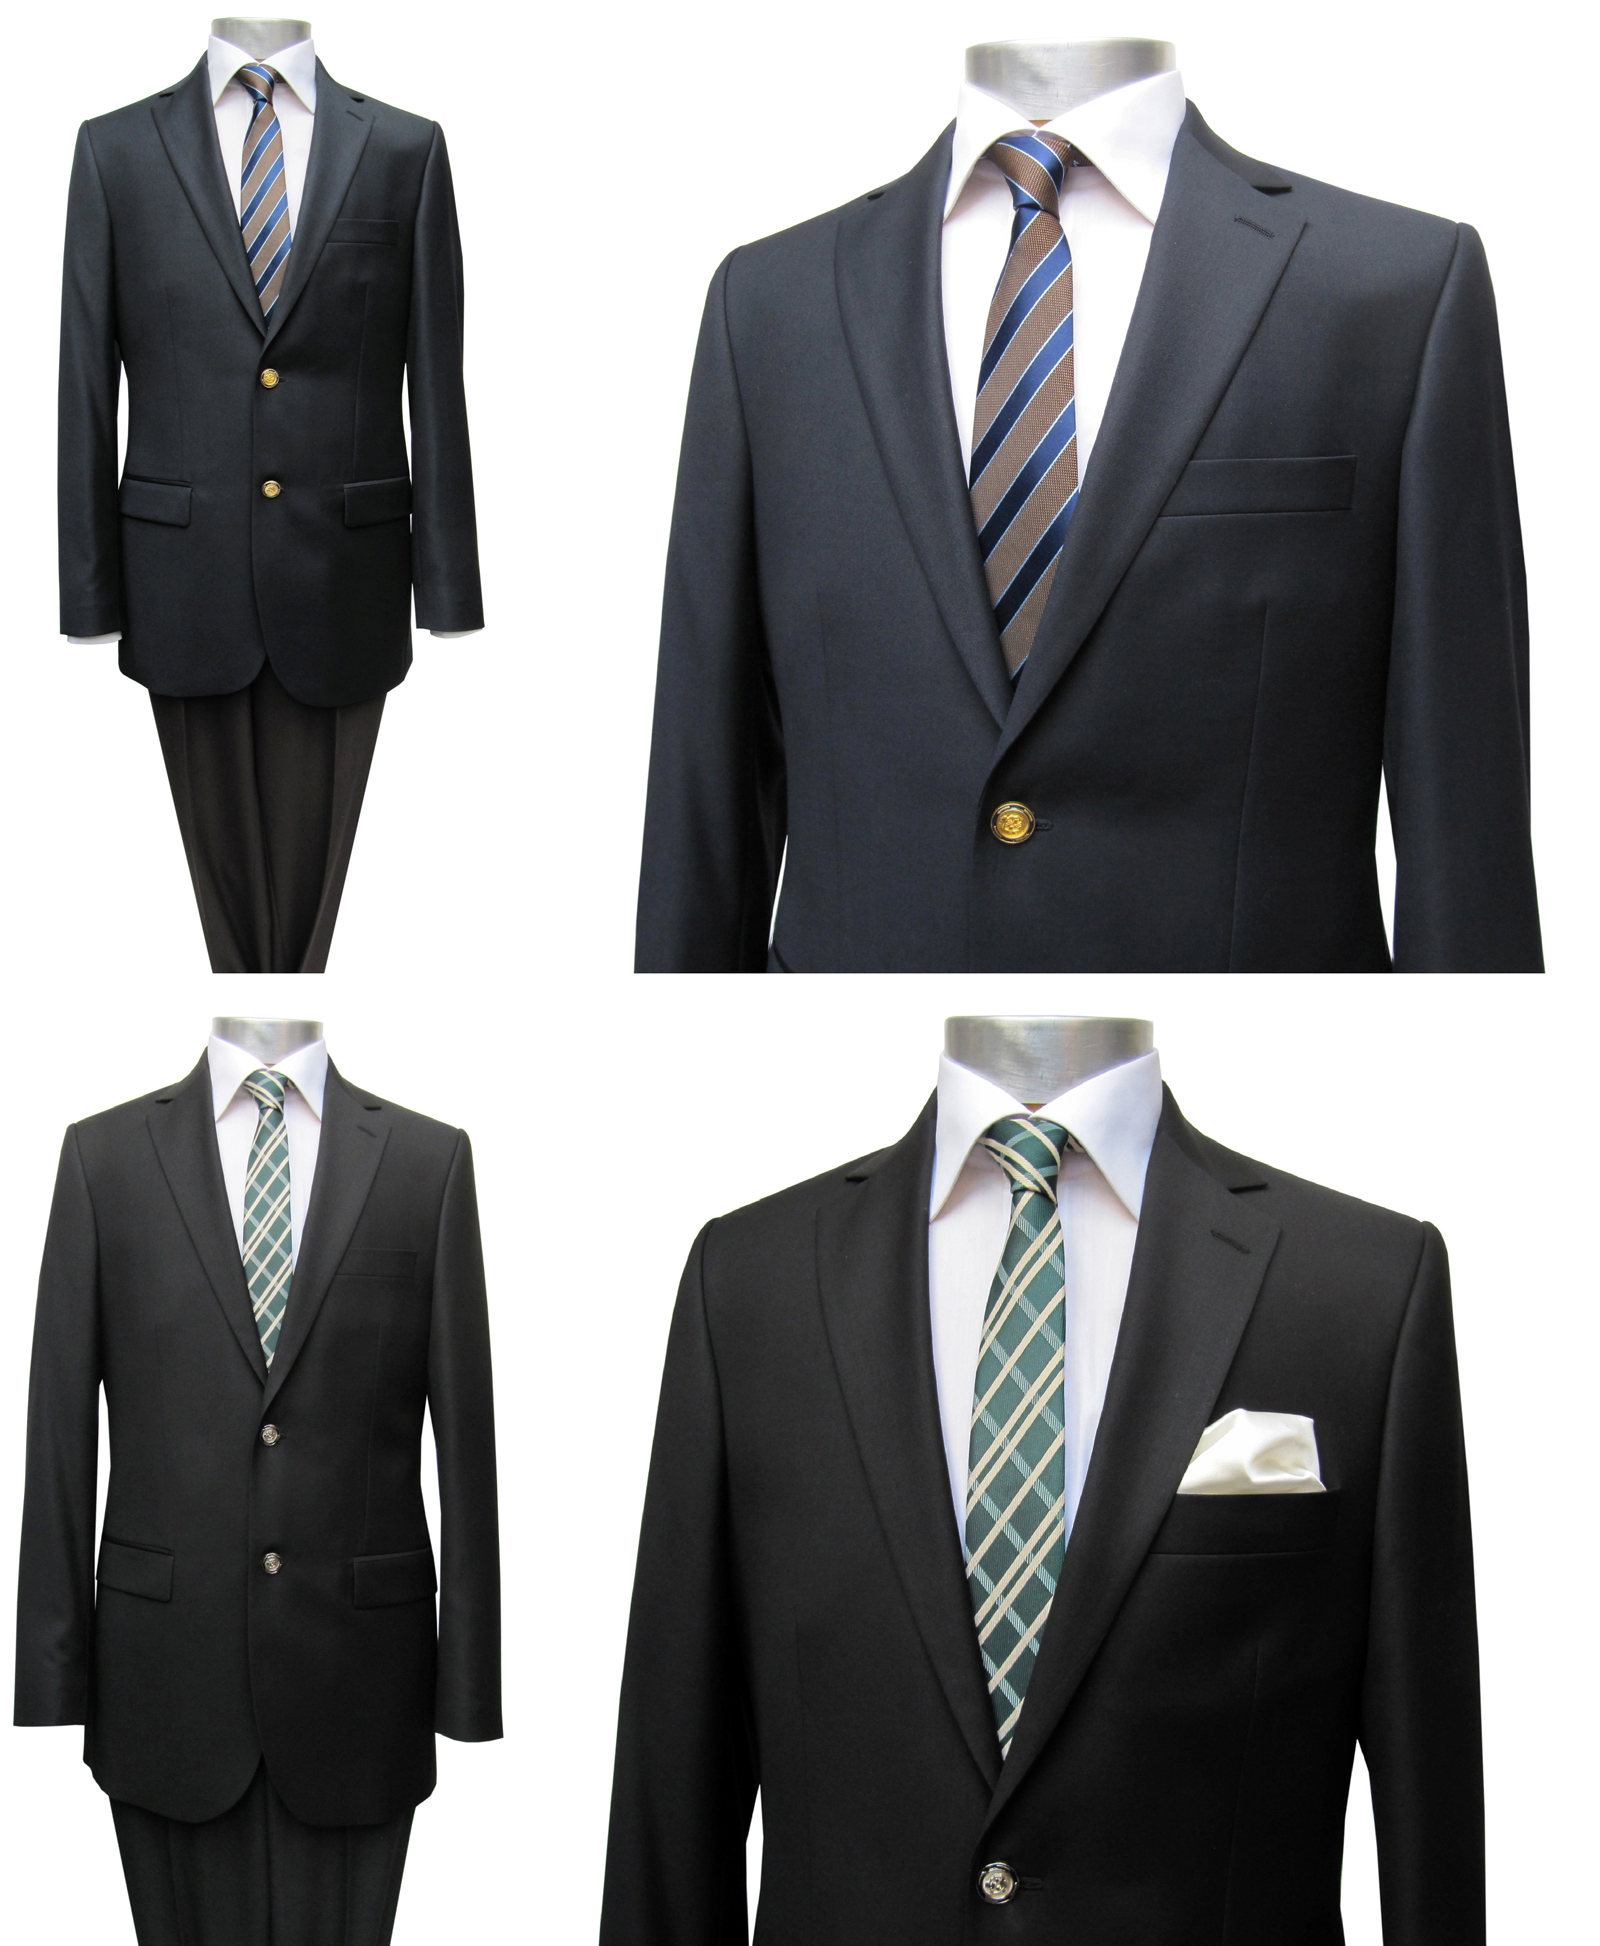 Amen's blazer sewn from crushed velvet reflects light off the shimmering fabric, creating a unique statement piece. Silk blazers present a smooth silhouette, and the distinct fabric is an upscale alternative to traditional black-tie attire.